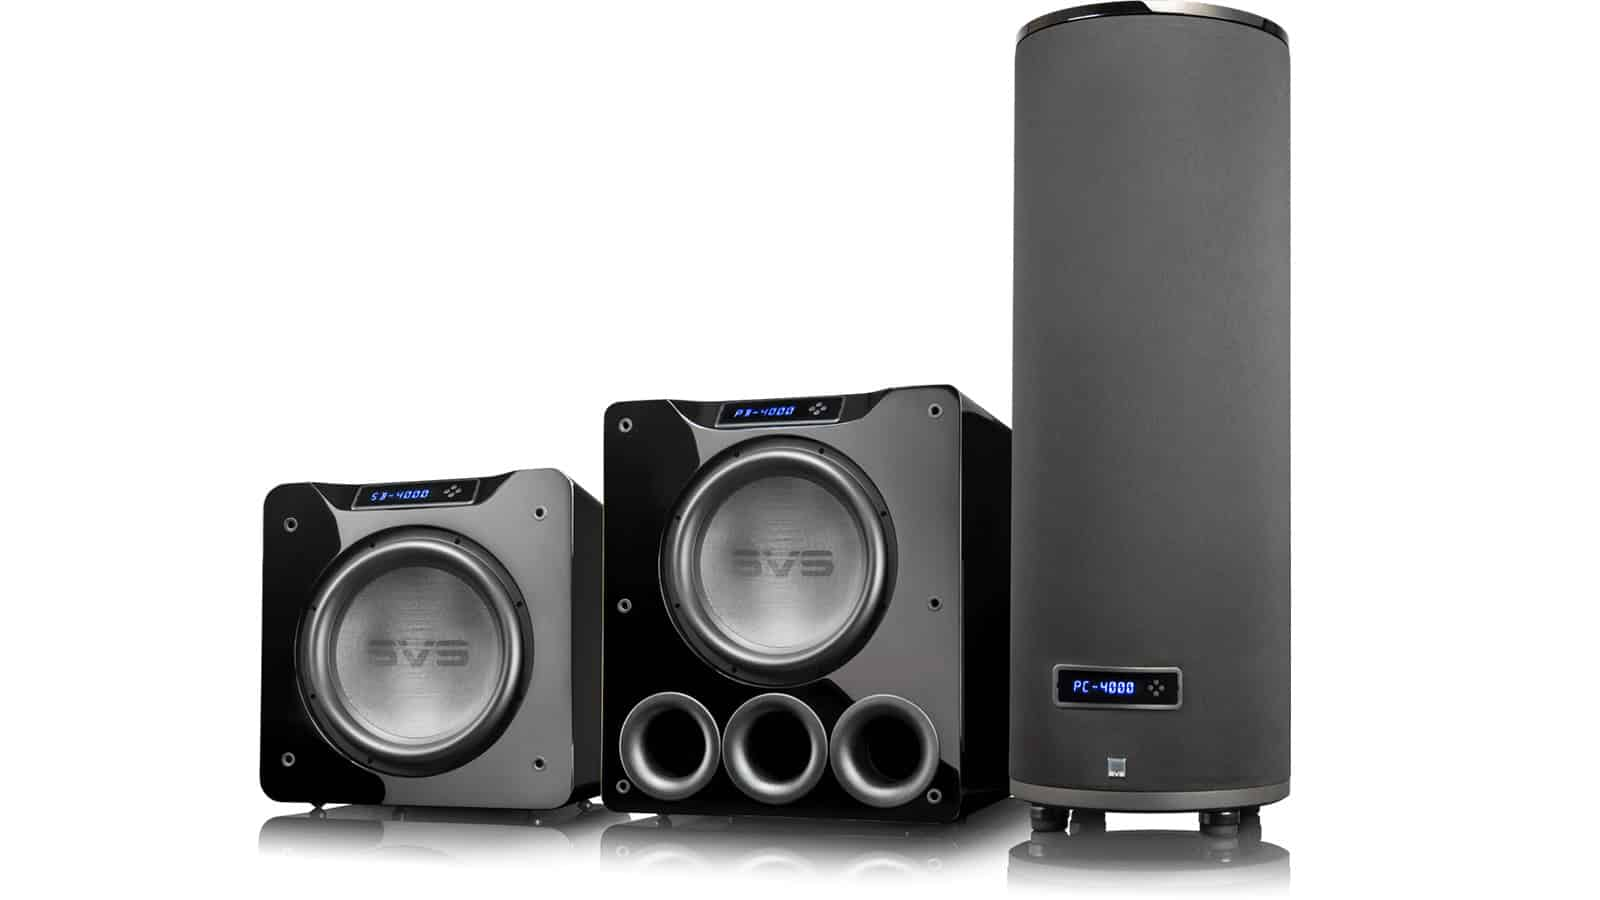 svs 4000 series subwoofers best of high end. Black Bedroom Furniture Sets. Home Design Ideas